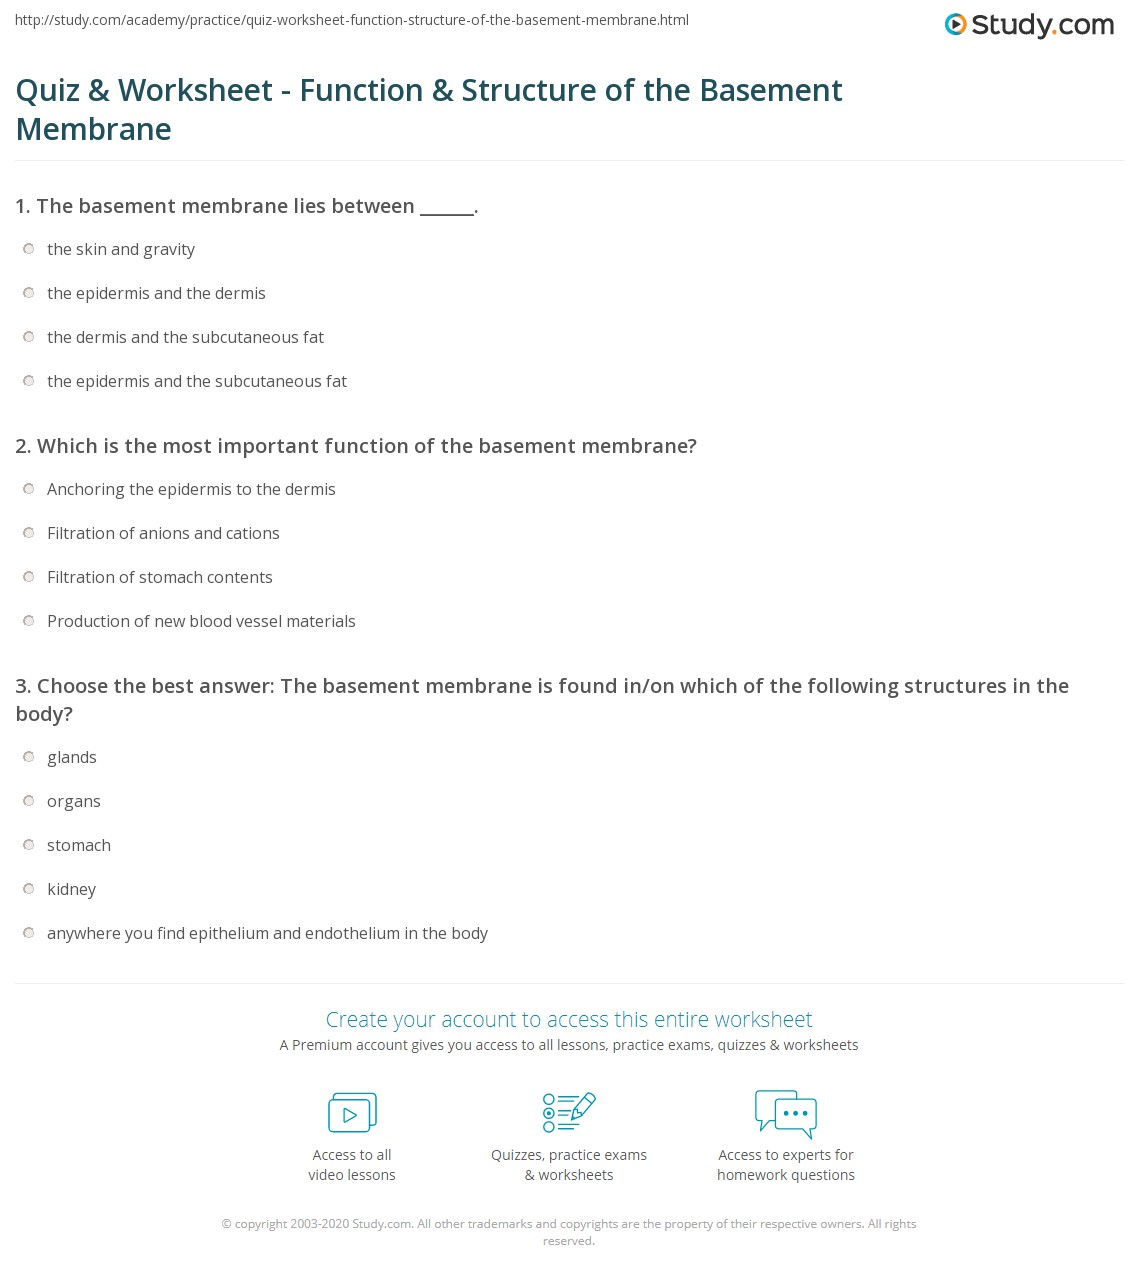 Workbooks parallel structure worksheets : Quiz & Worksheet - Function & Structure of the Basement Membrane ...